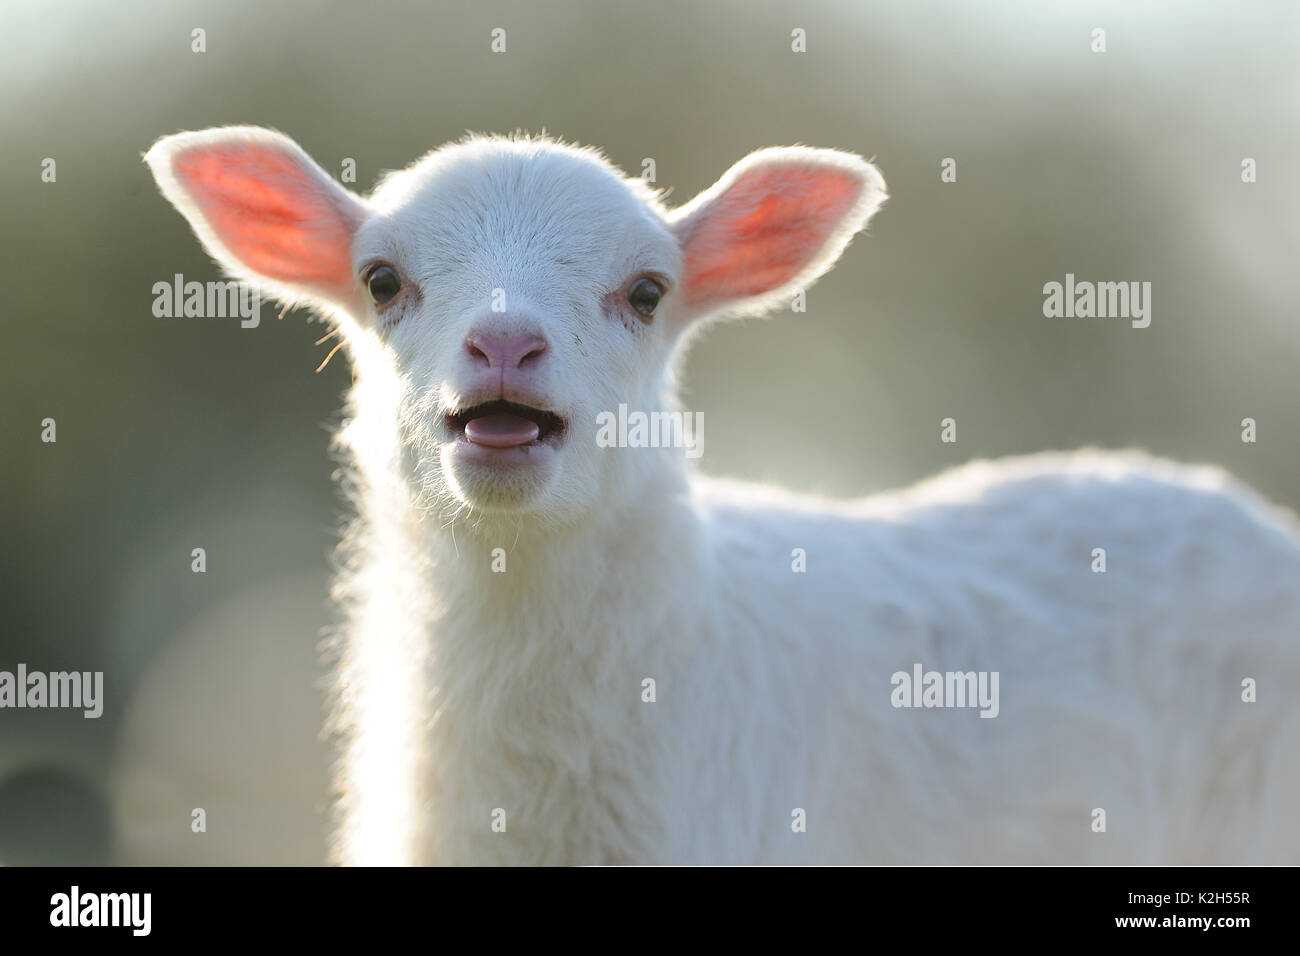 Domestic Sheep. Portrait of a lamb on a meadow, bleating. Germany - Stock Image